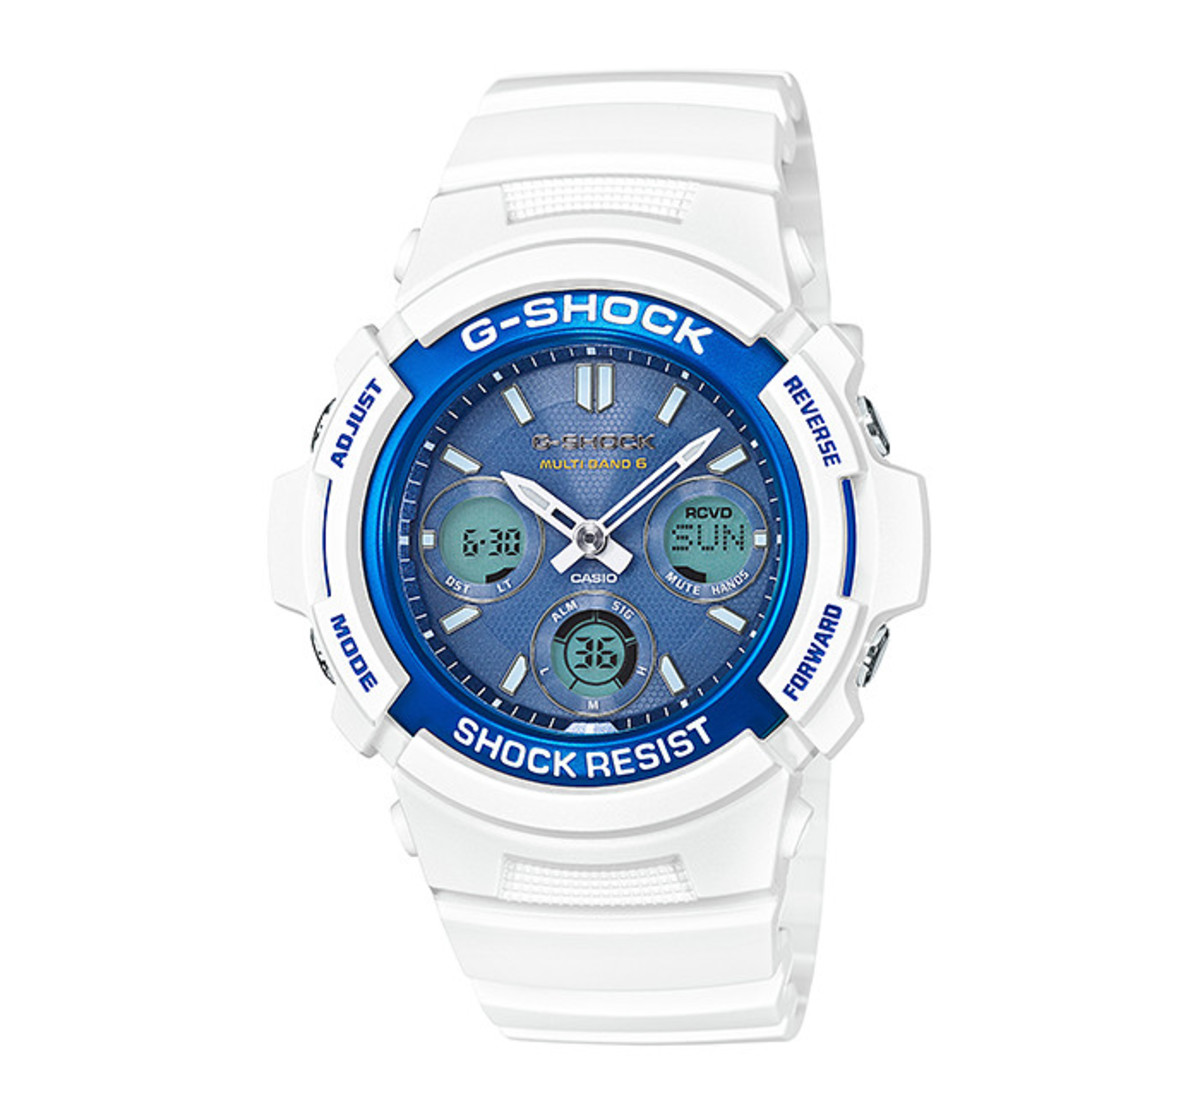 g-shock-white-and-light-blue-series-03.jpeg